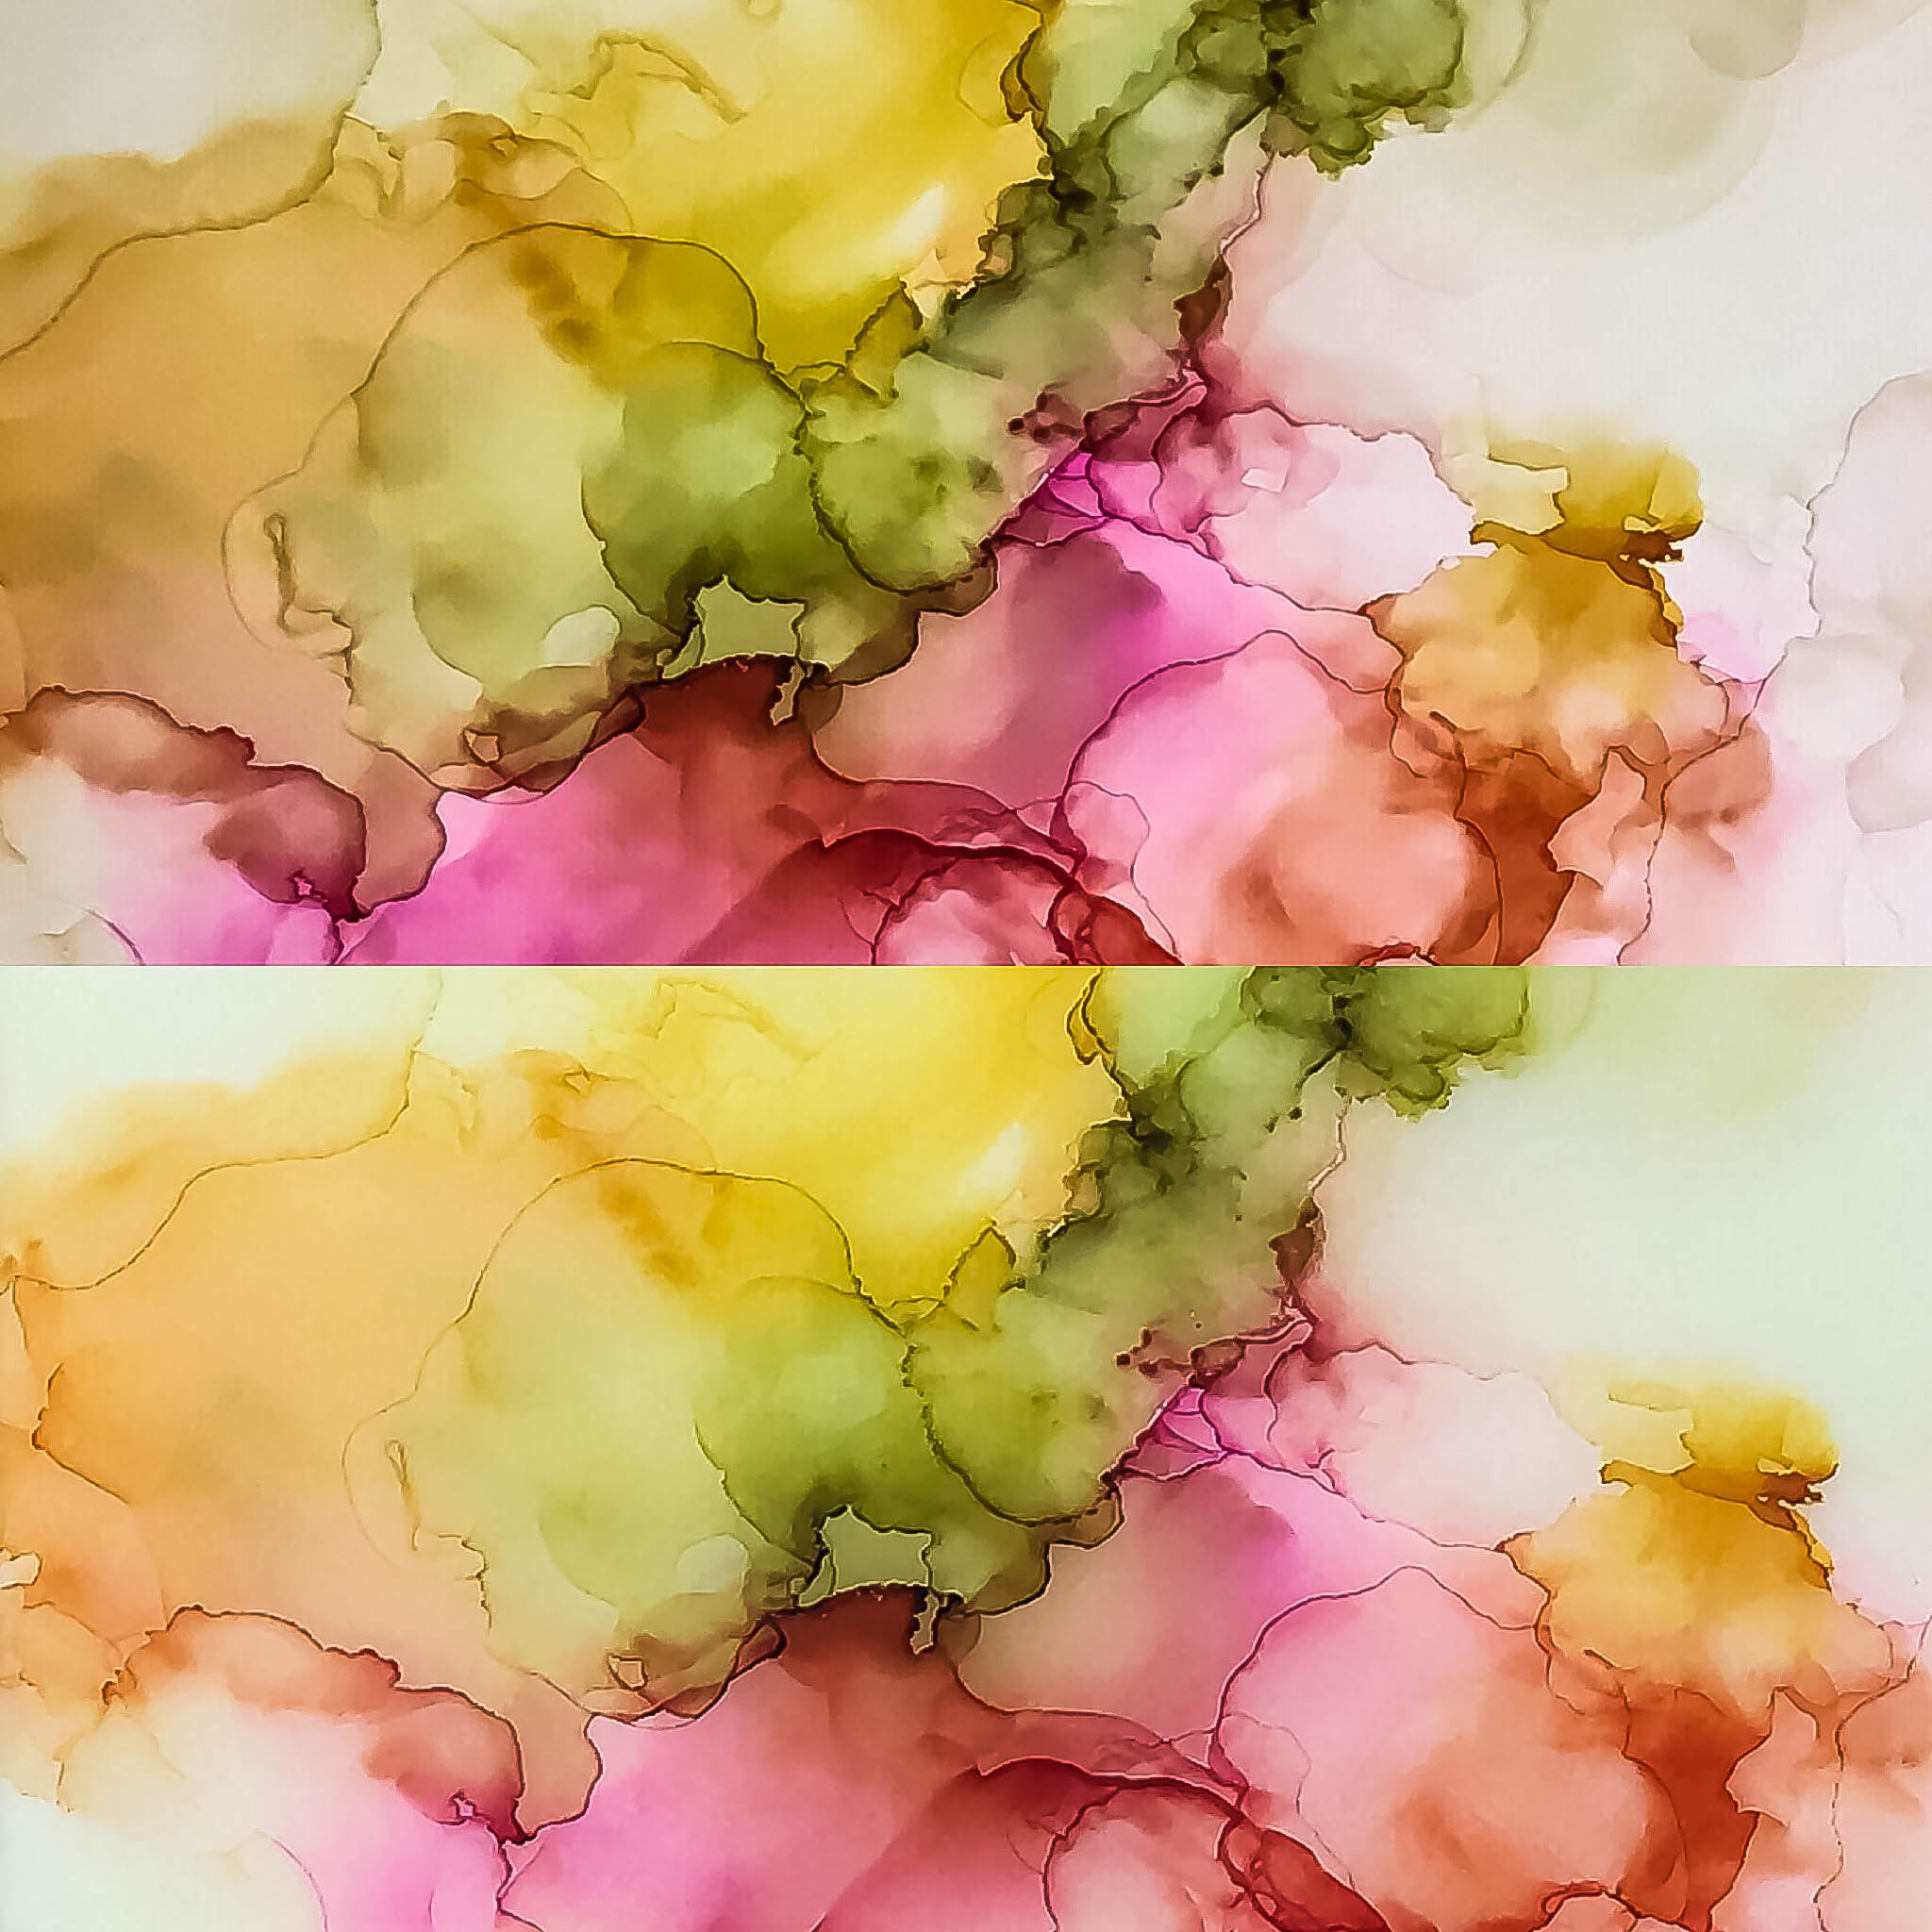 TOP: Alcohol ink before resin application. BOTTOM: Full resin coating over alcohol ink.